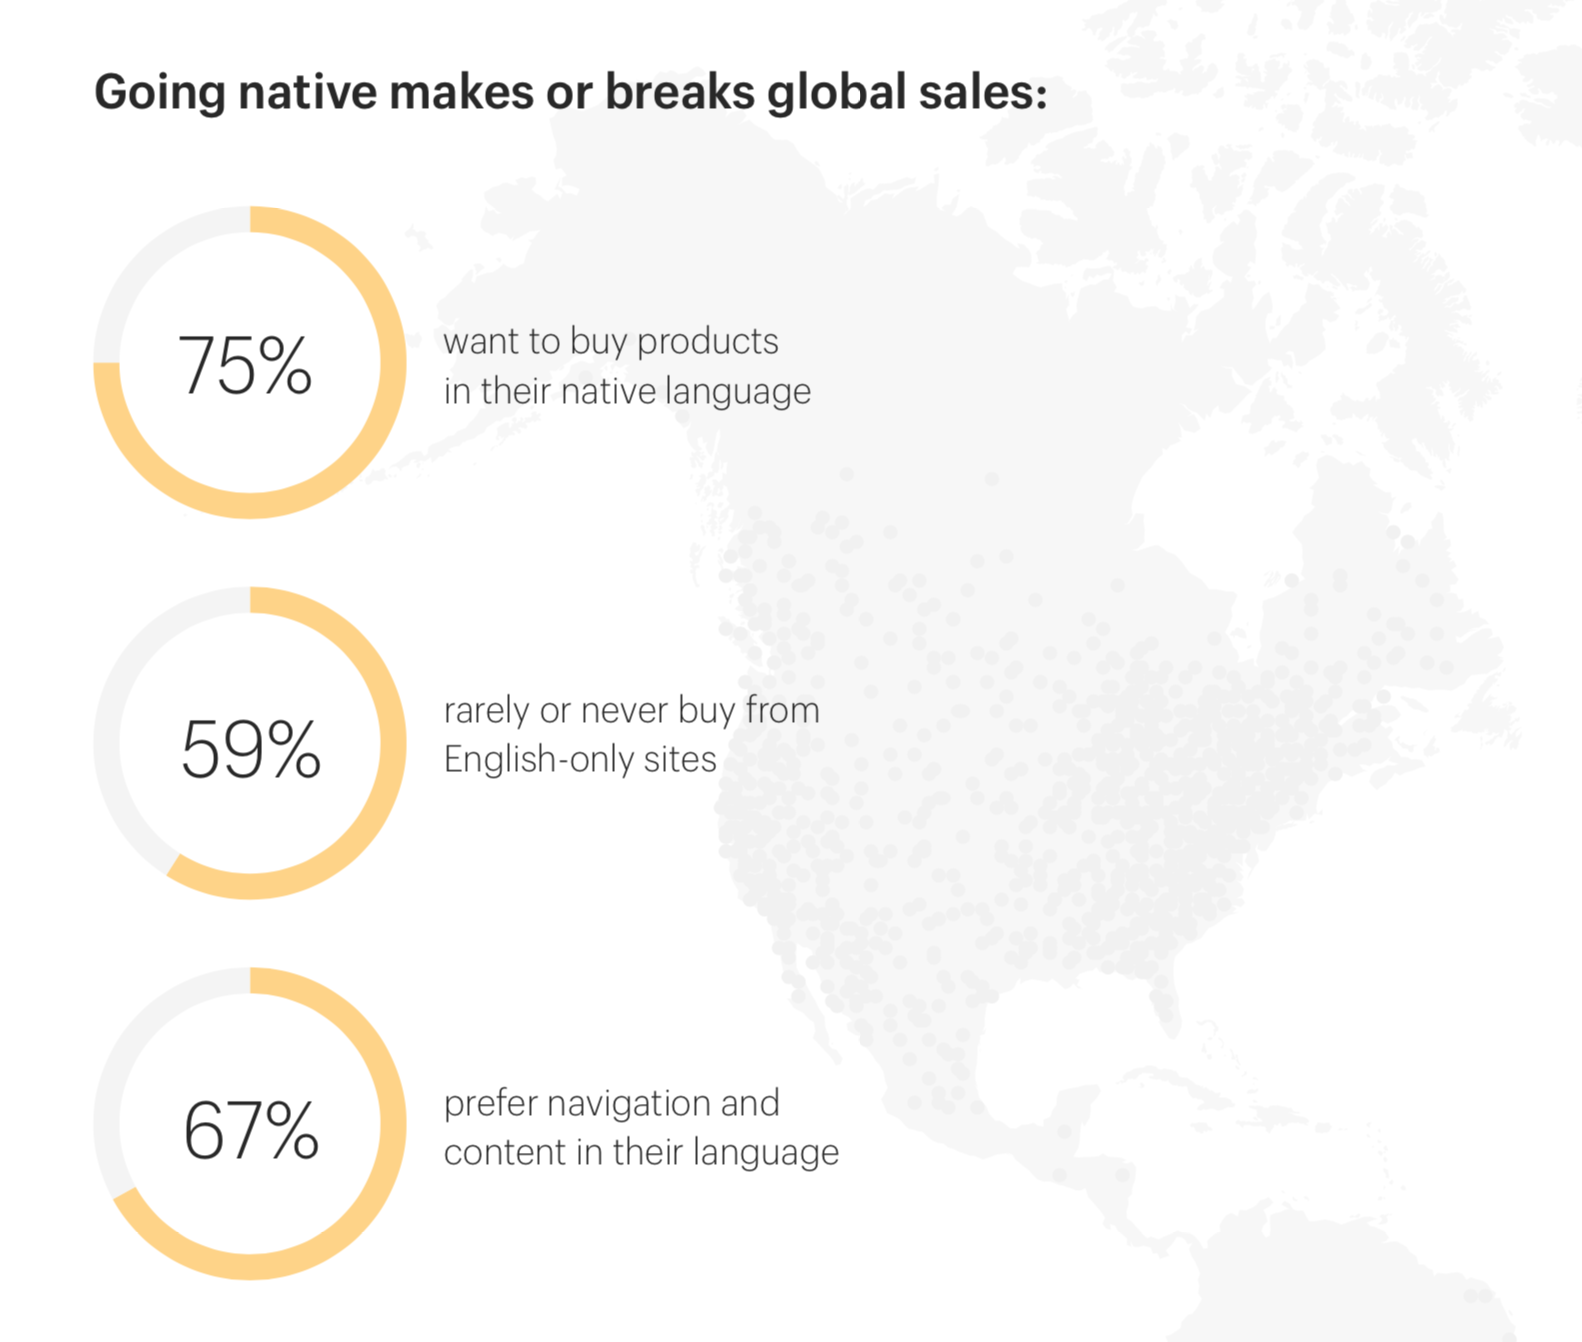 Language is a top challenge in international ecommerce